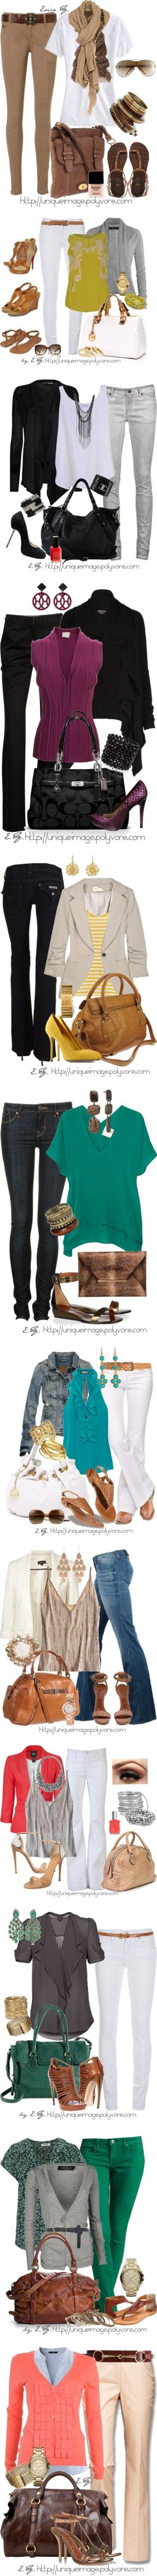 You don't have to have a ton of clothes to dress cute and different everyday! Go through what u have and mix and match different pieces and u will.find that u have 3 times the amount.of clothes...already In ur.closet!! Here are a few examples of how to put cute outfits together with peices or similar peices u alreadybby have!!!